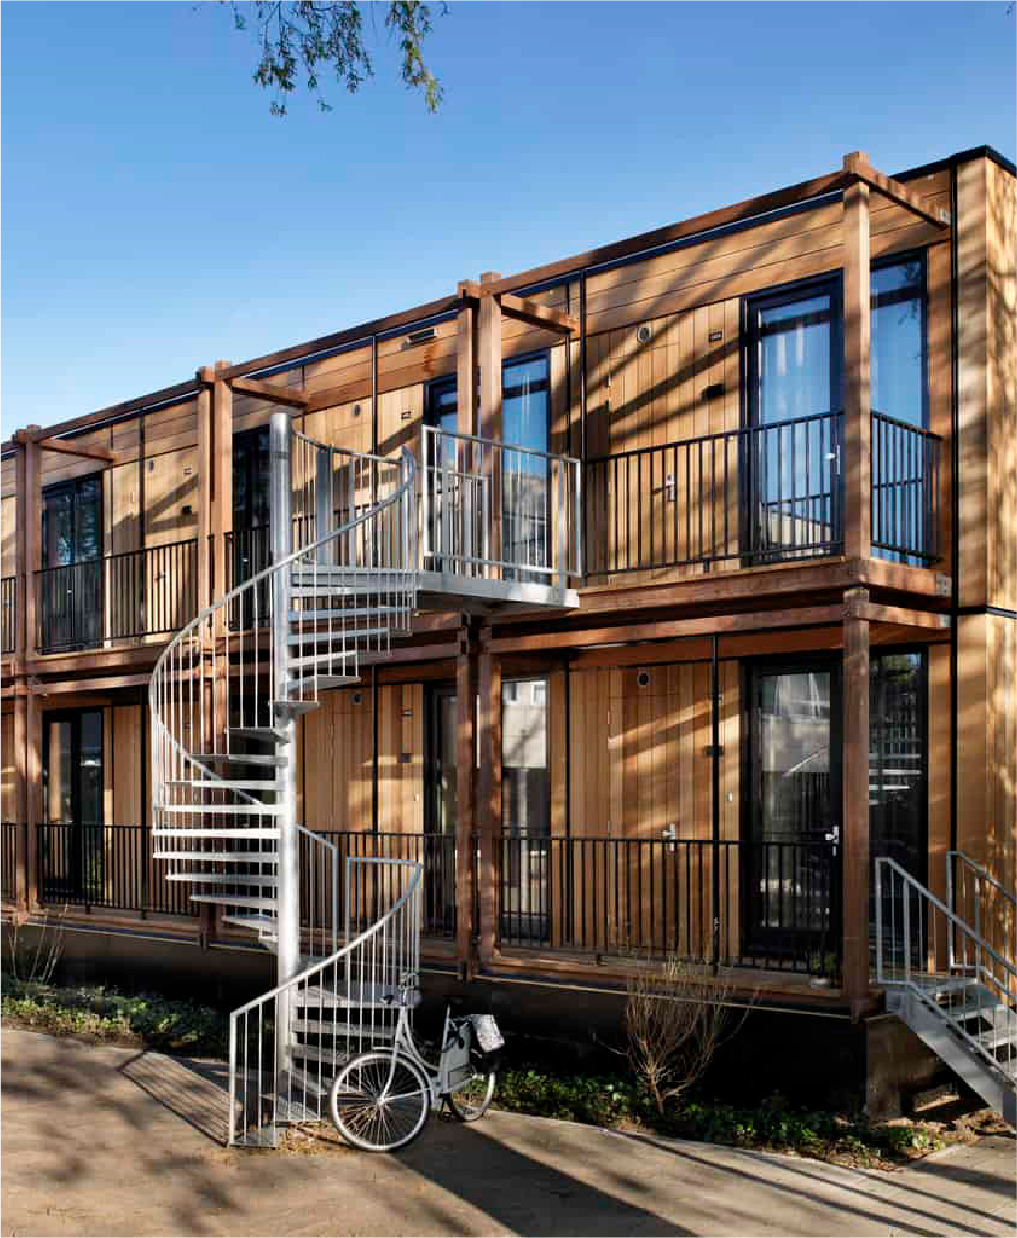 Finch Buildings develop modular timber buildings which are leaders in the circular construction sector